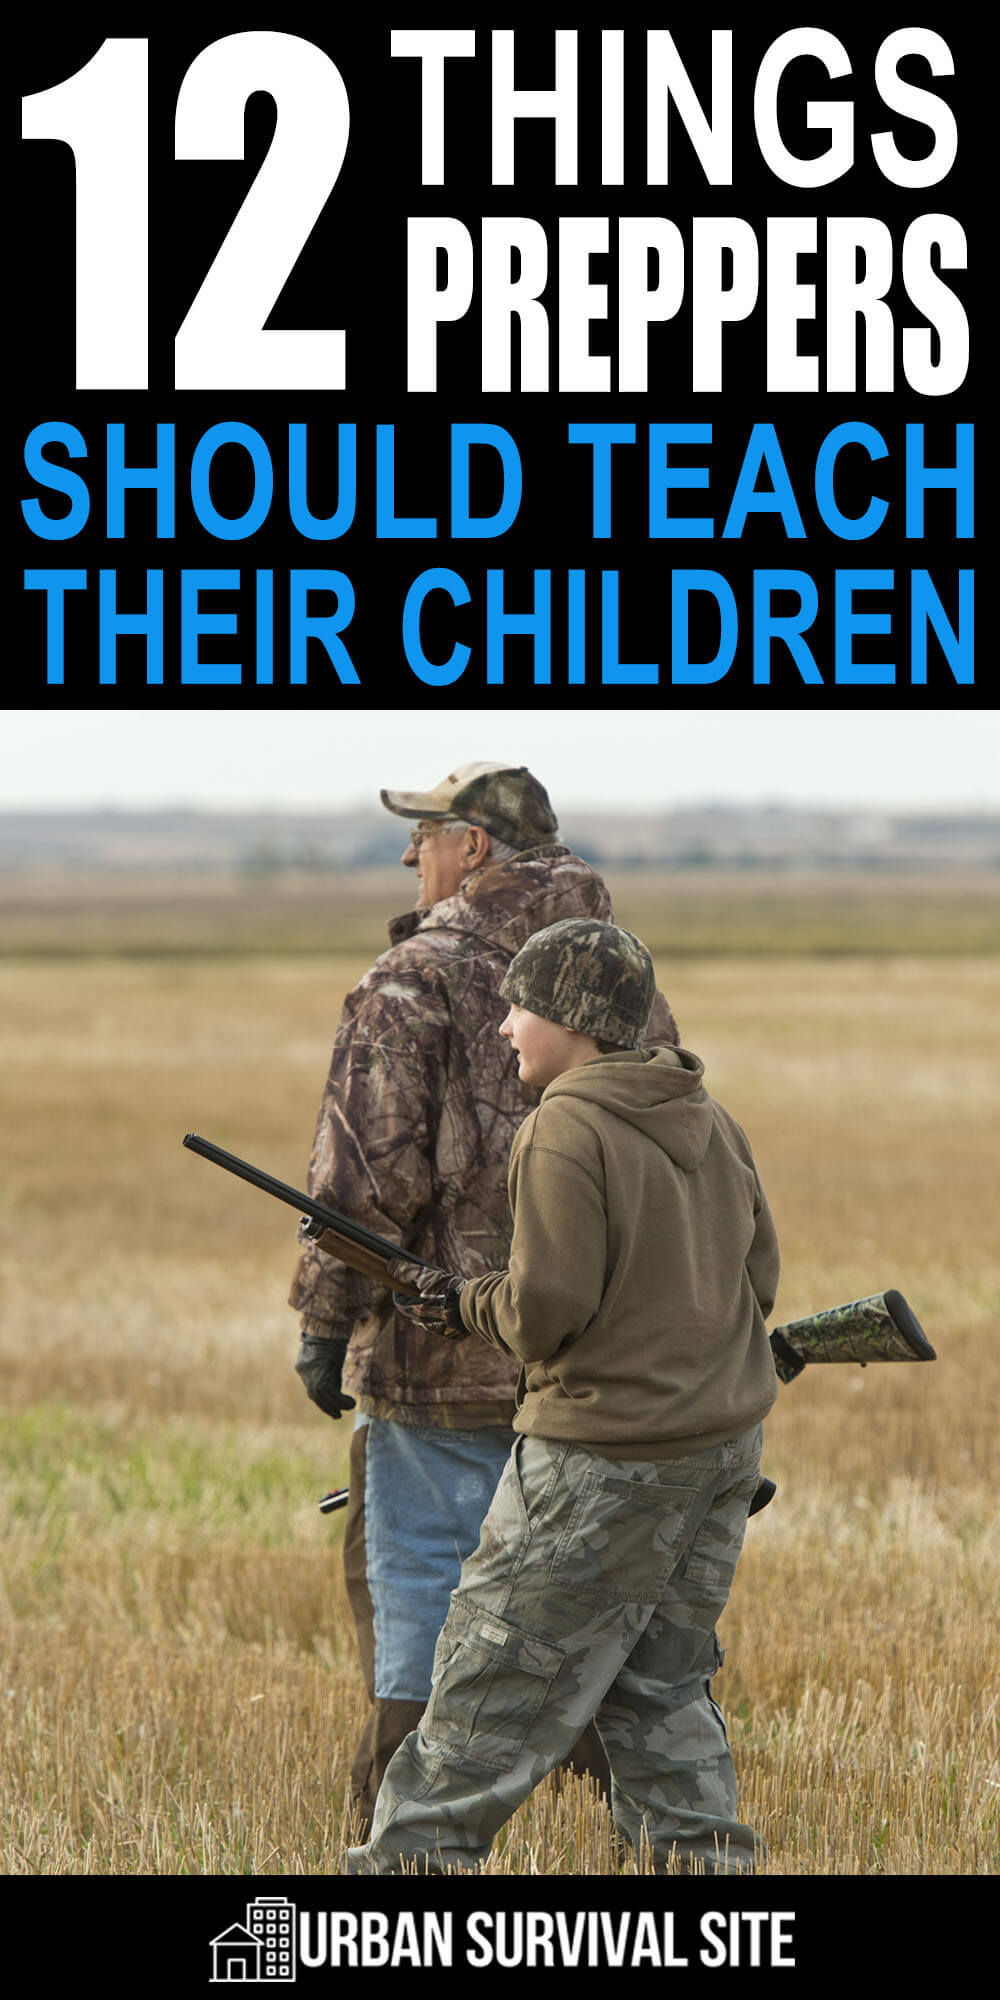 12 Things Preppers Should Teach Their Children